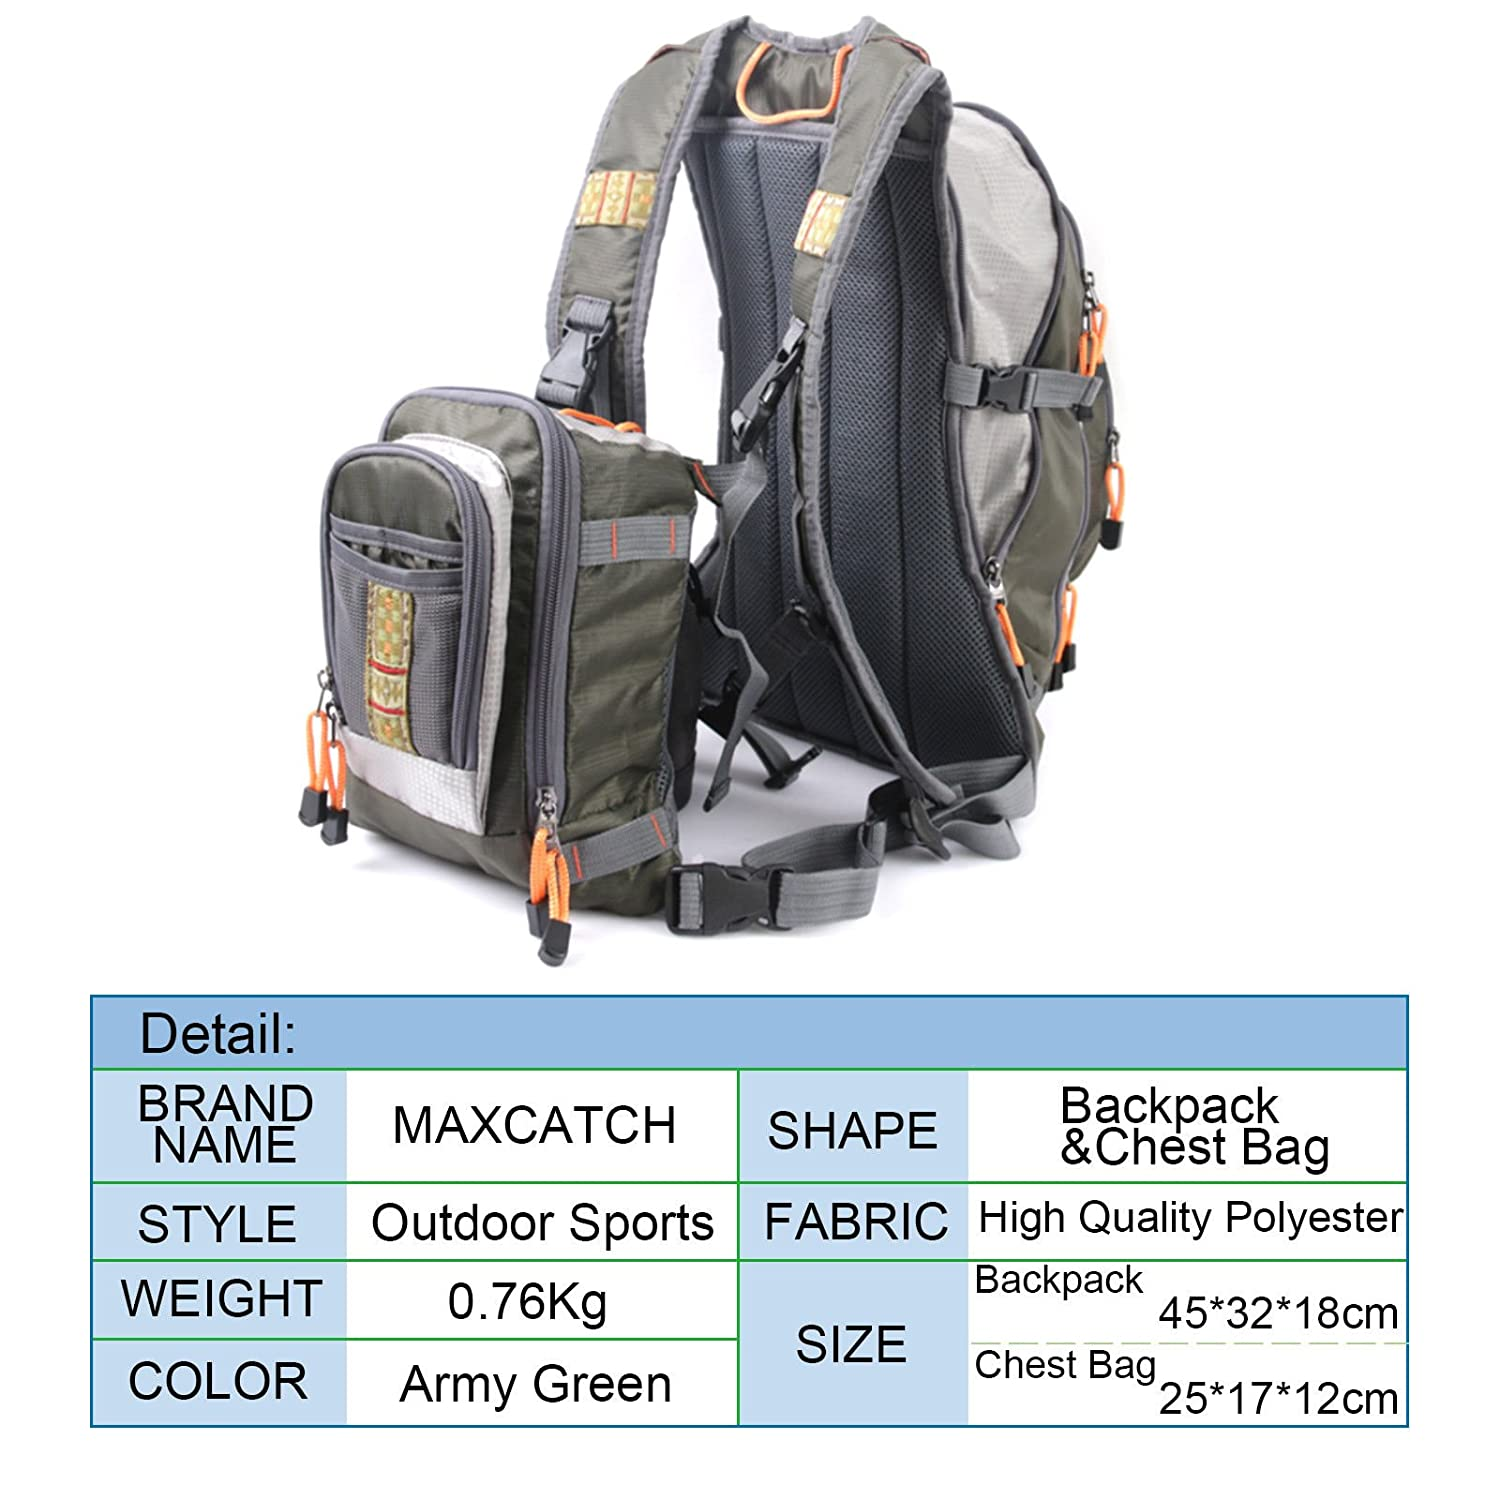 M MAXIMUMCATCH Maxcatch Fly Fishing Backpack with Tackle Chest Pack, Adjustable Size